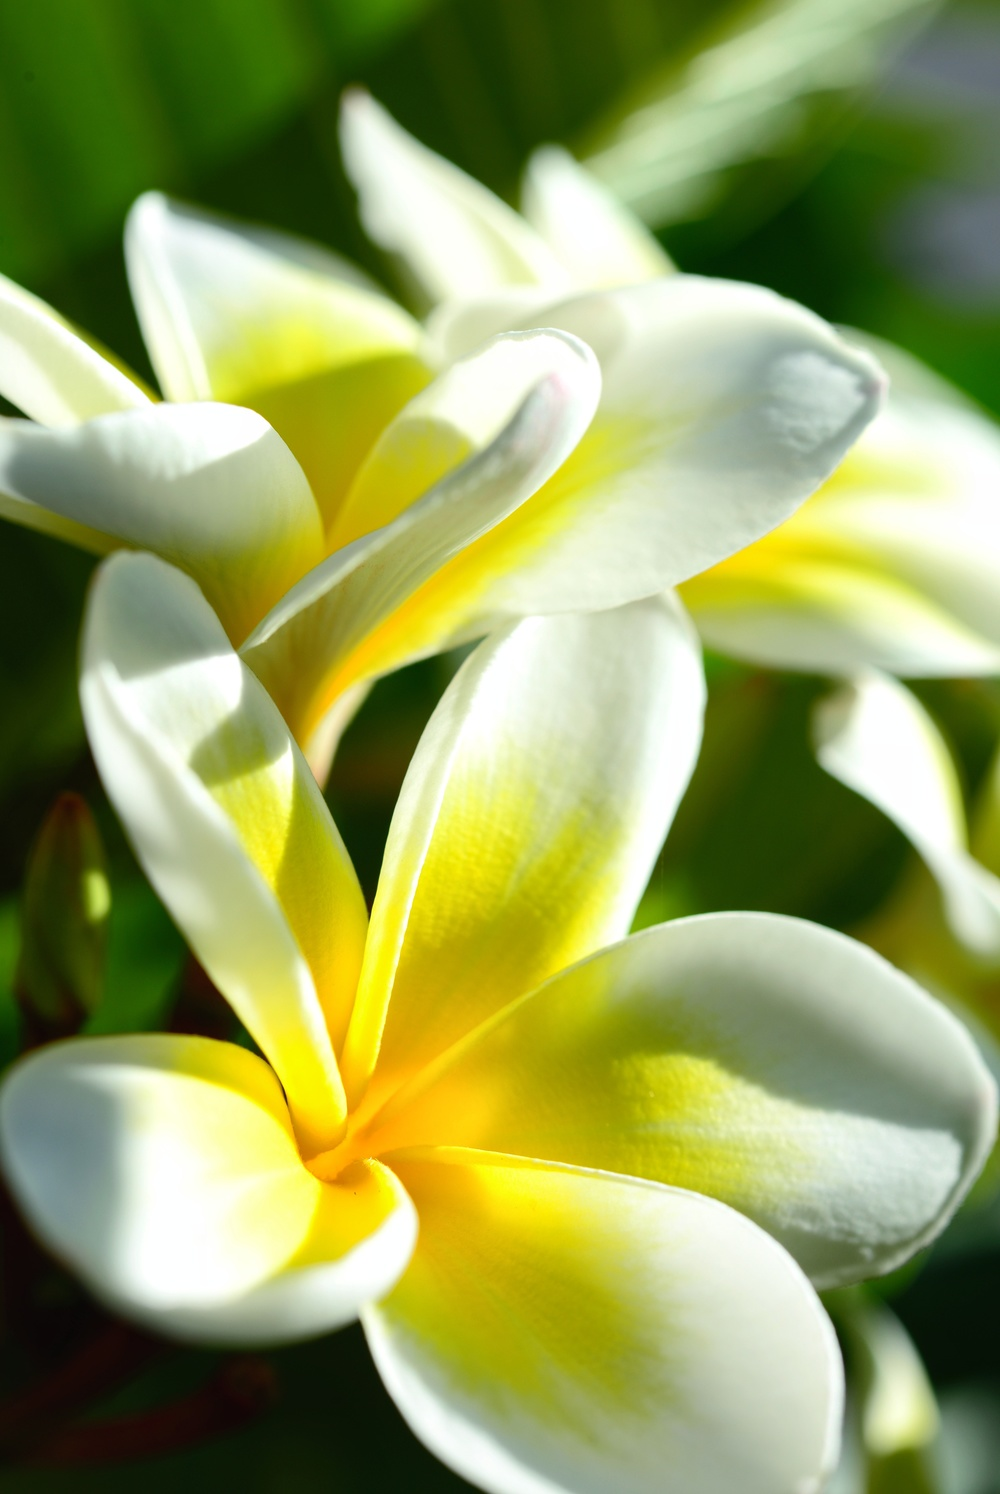 Frangipani Flower. The most beautiful flower on earth. With a scent that you want to have as a perfume. Simplicity in perfection.